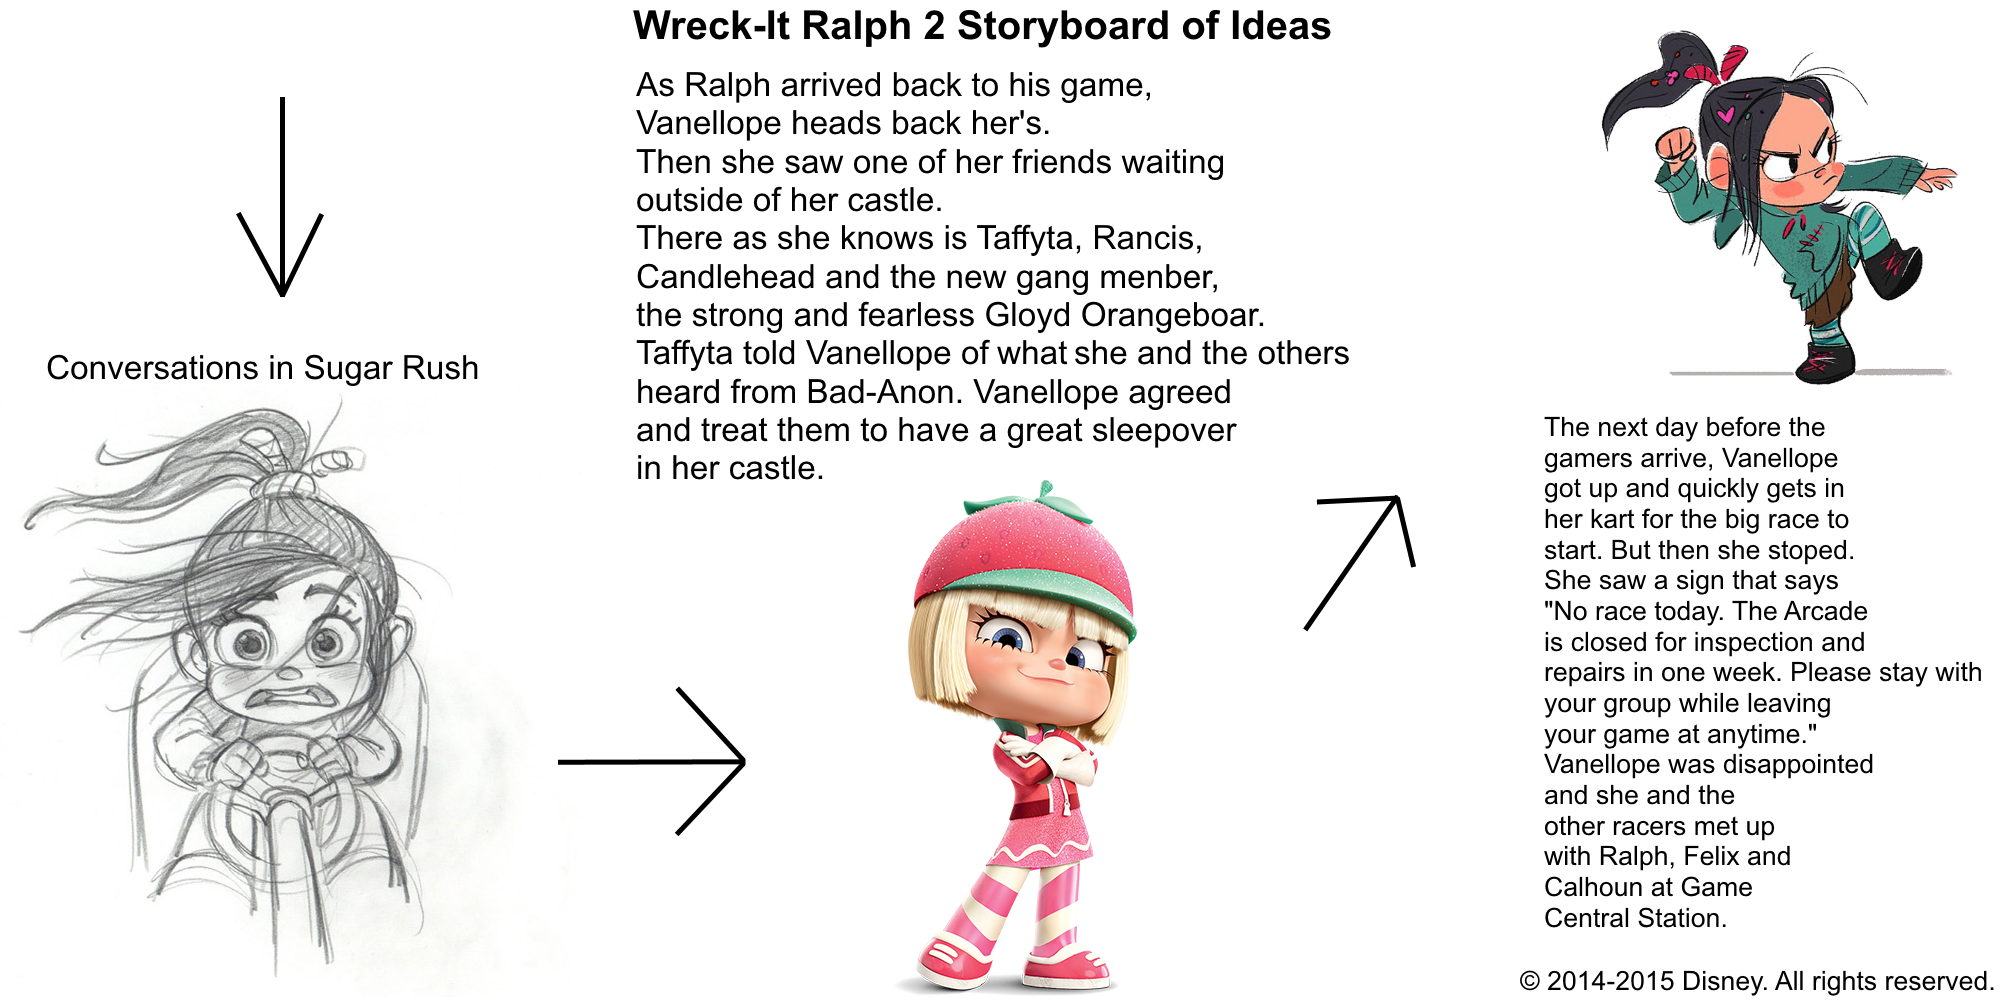 Best Lines From Wreck It Ralph 2: Wreck-It Ralph 2 Storyboard Of Ideas 2.png